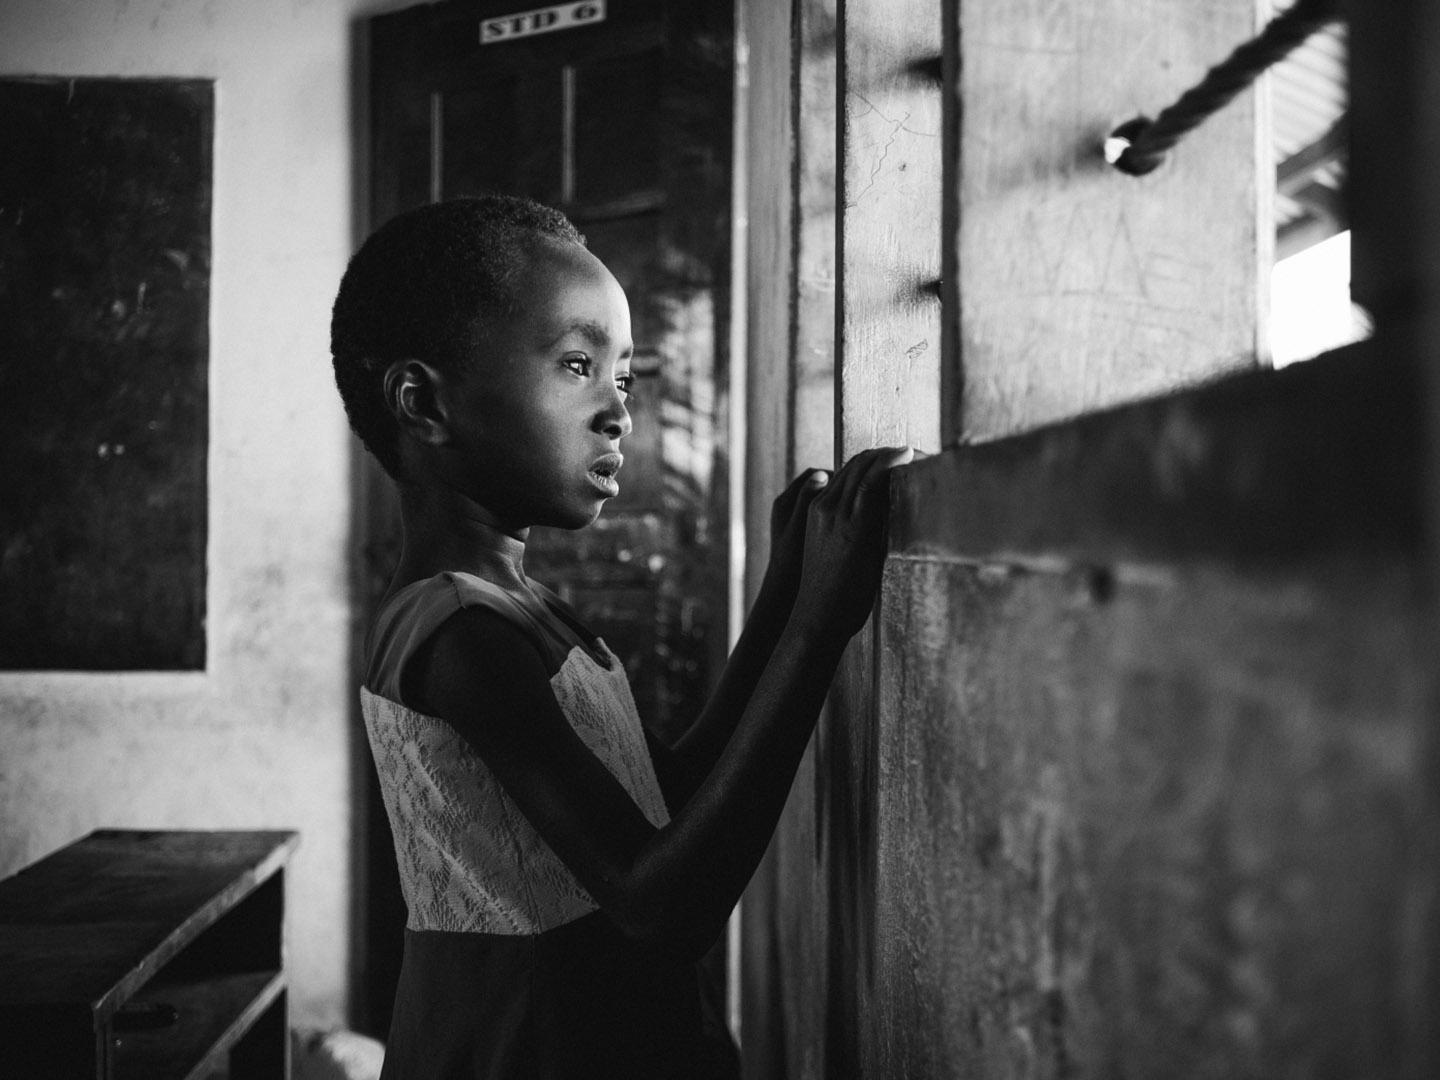 Categories: Reportage; Ph. FLAVIO TORRE; Location: Malindi, Kenya;